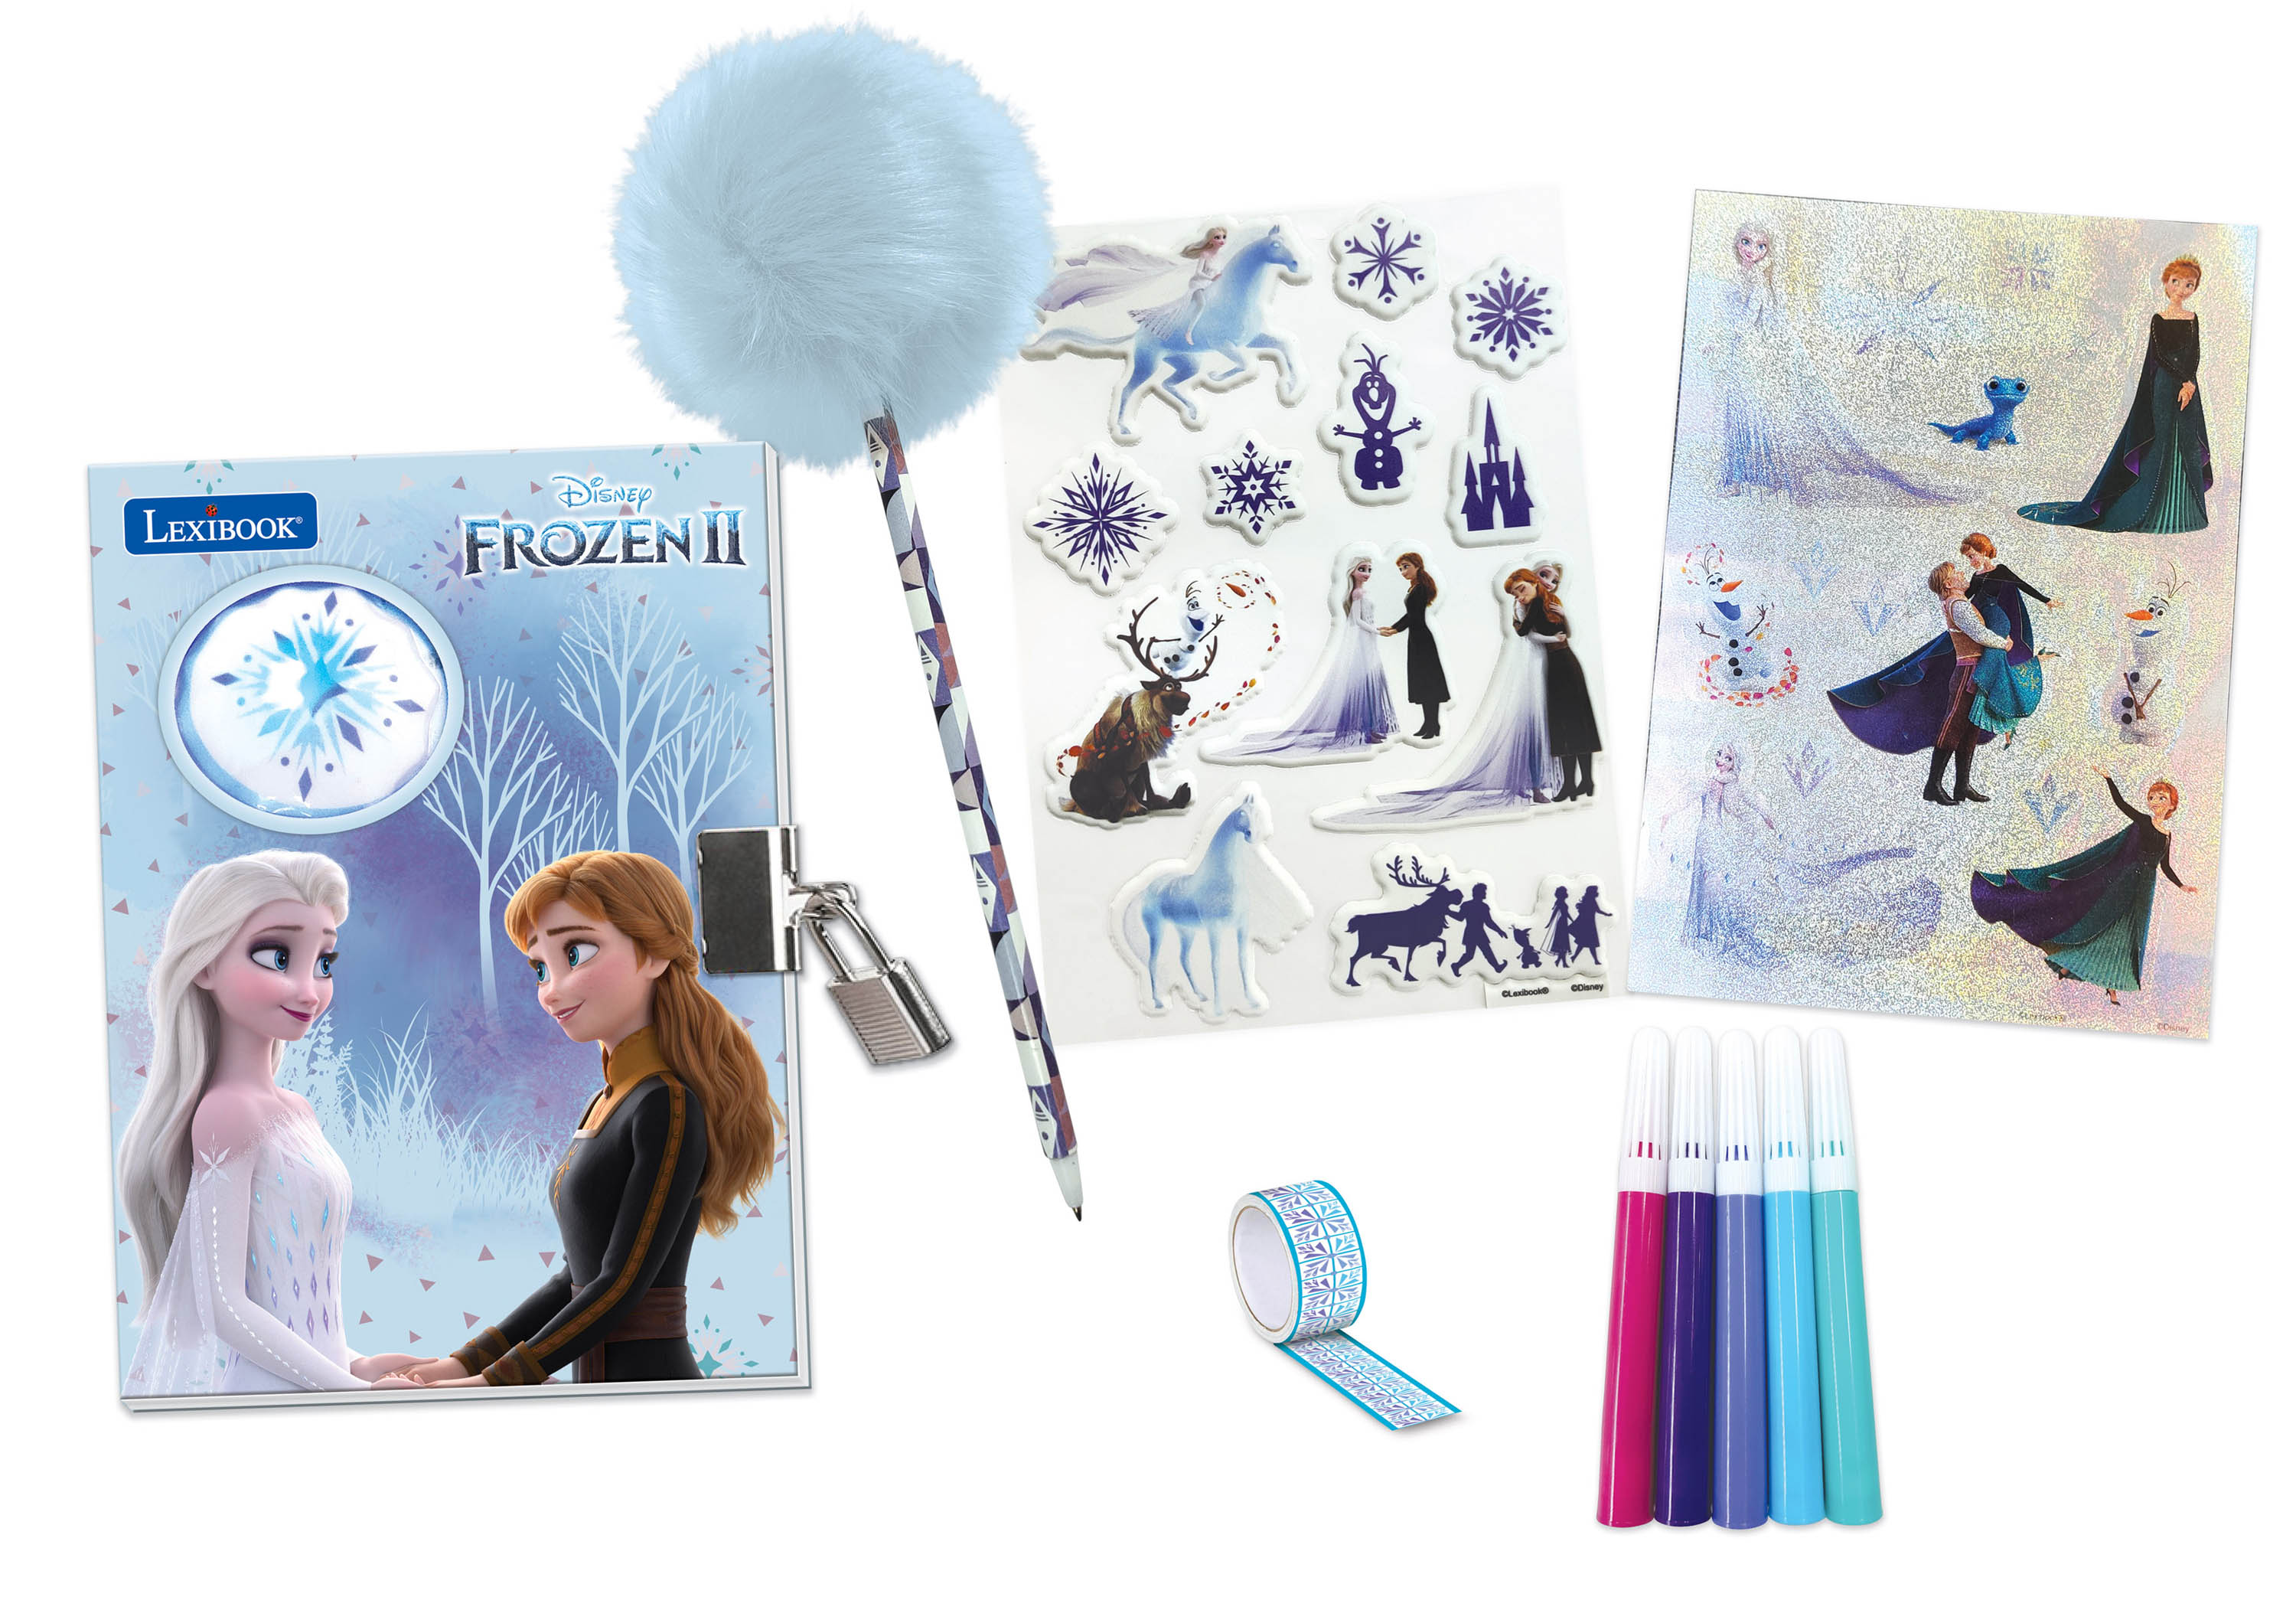 Lexibook - Frozen Electronic Secret Diary with light and accessories (stickers, pen, color pen) (SD30FZ)